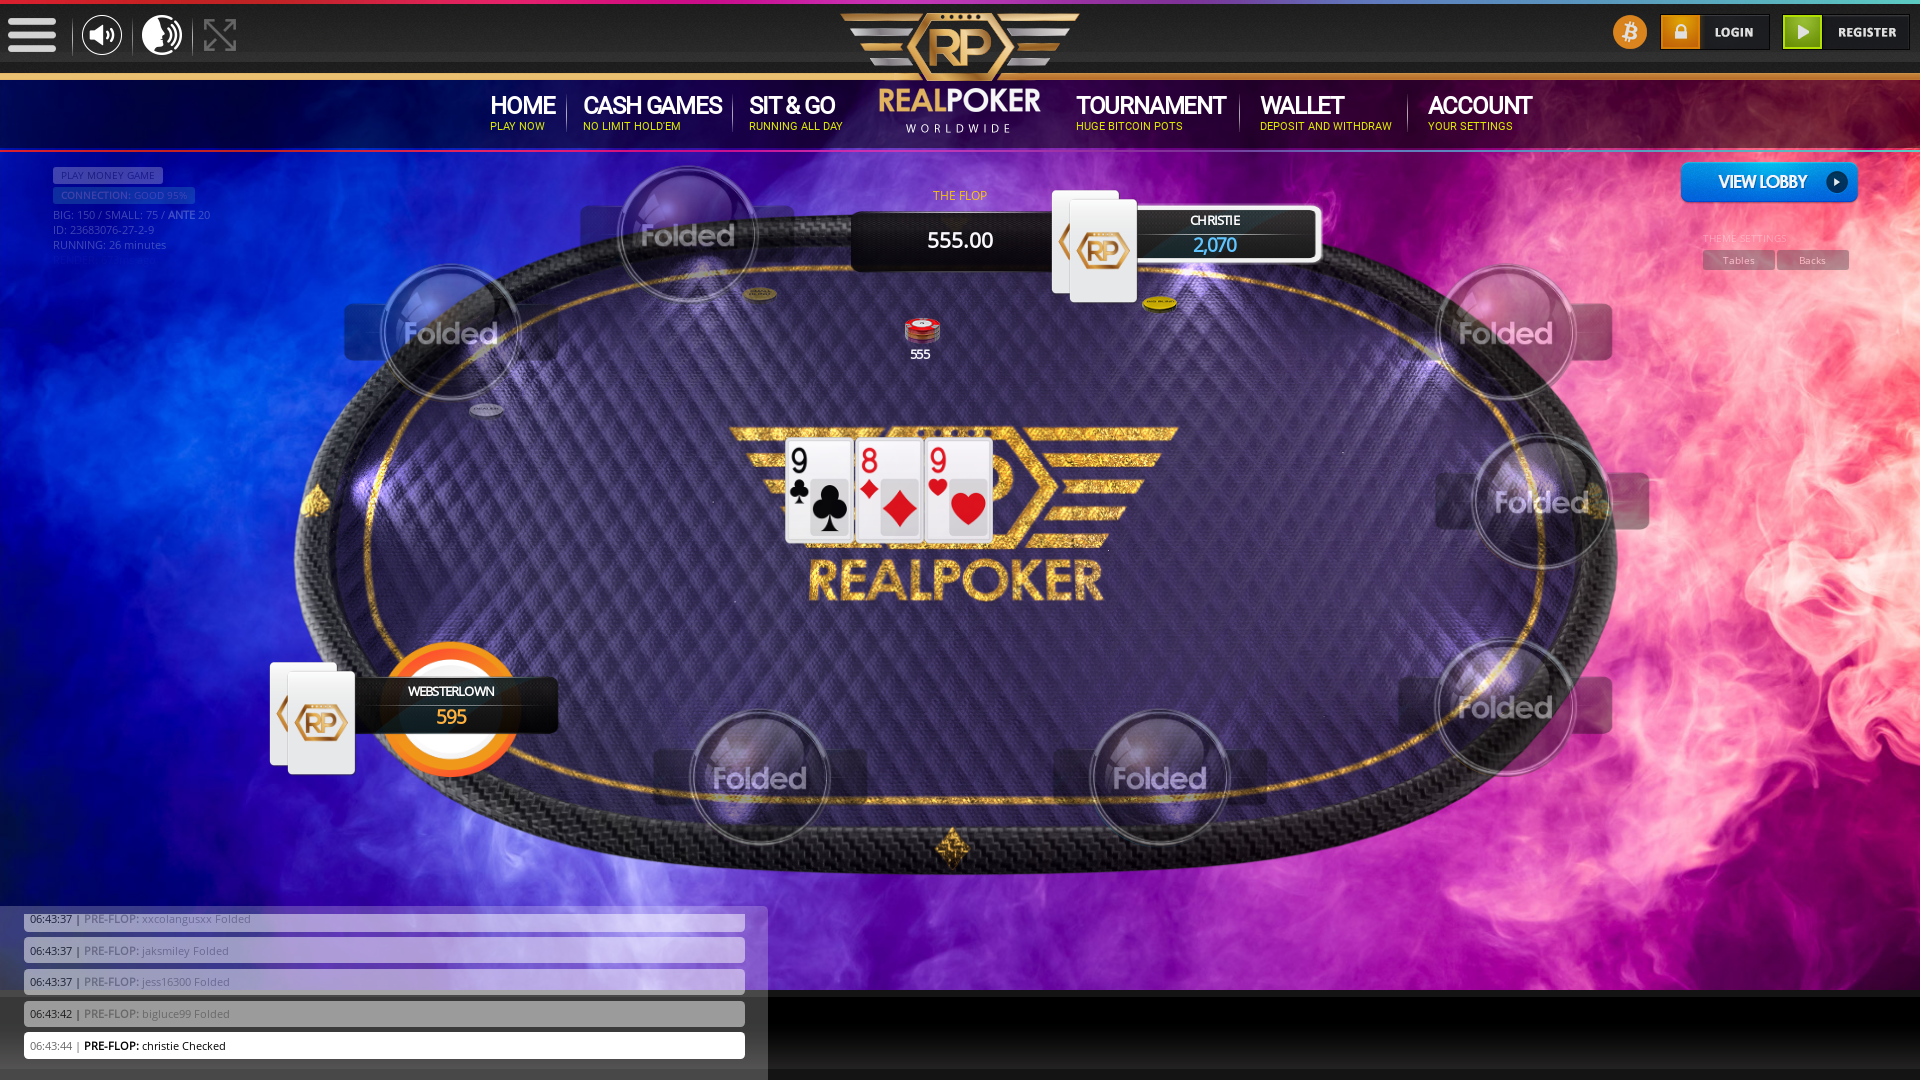 London real poker on a 10 player table in the 26th minute of the match